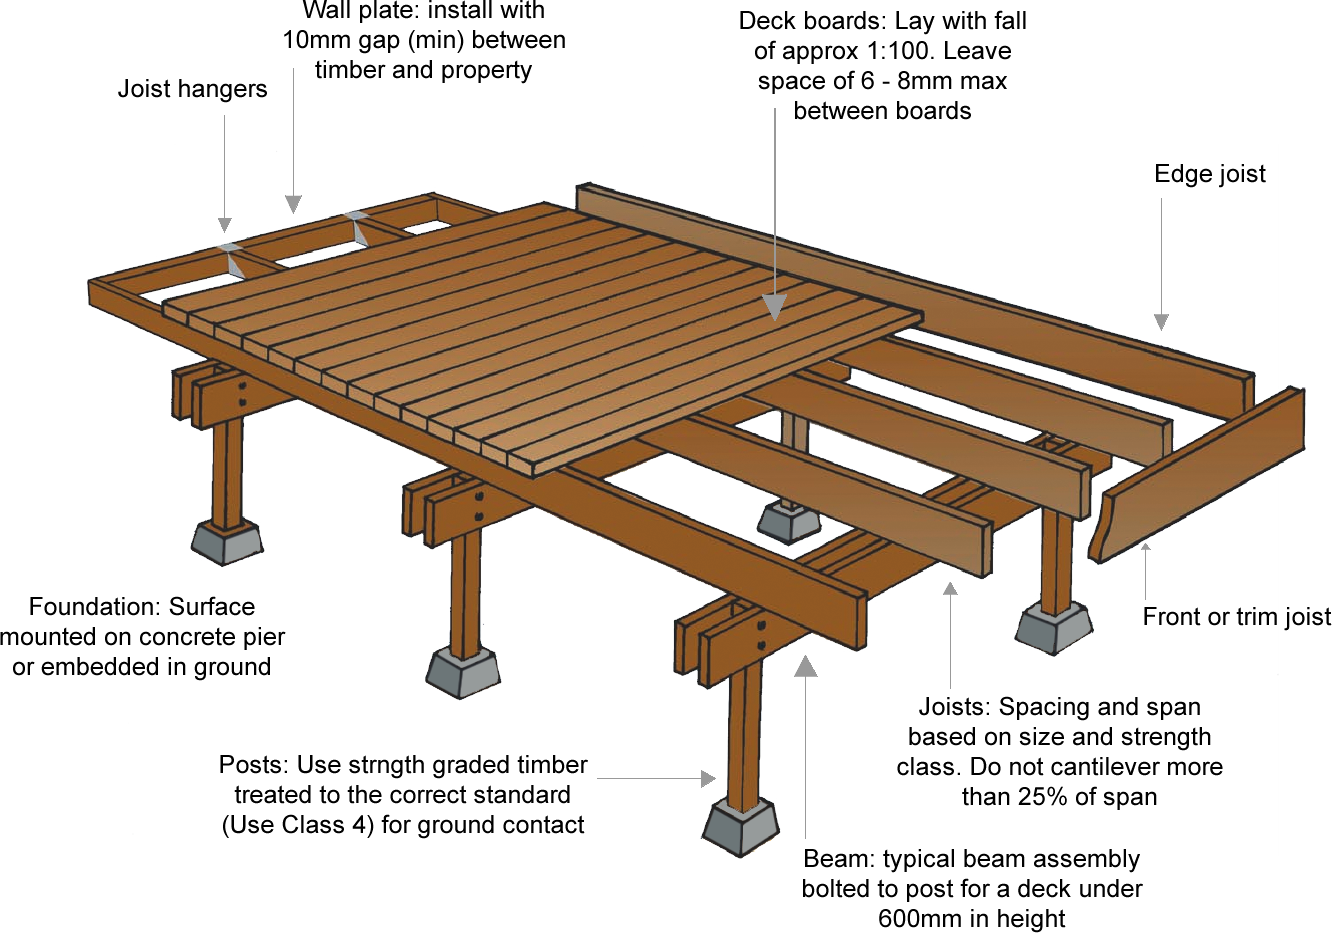 Deck boards are fixed to joists, which are supported by beams attached ...